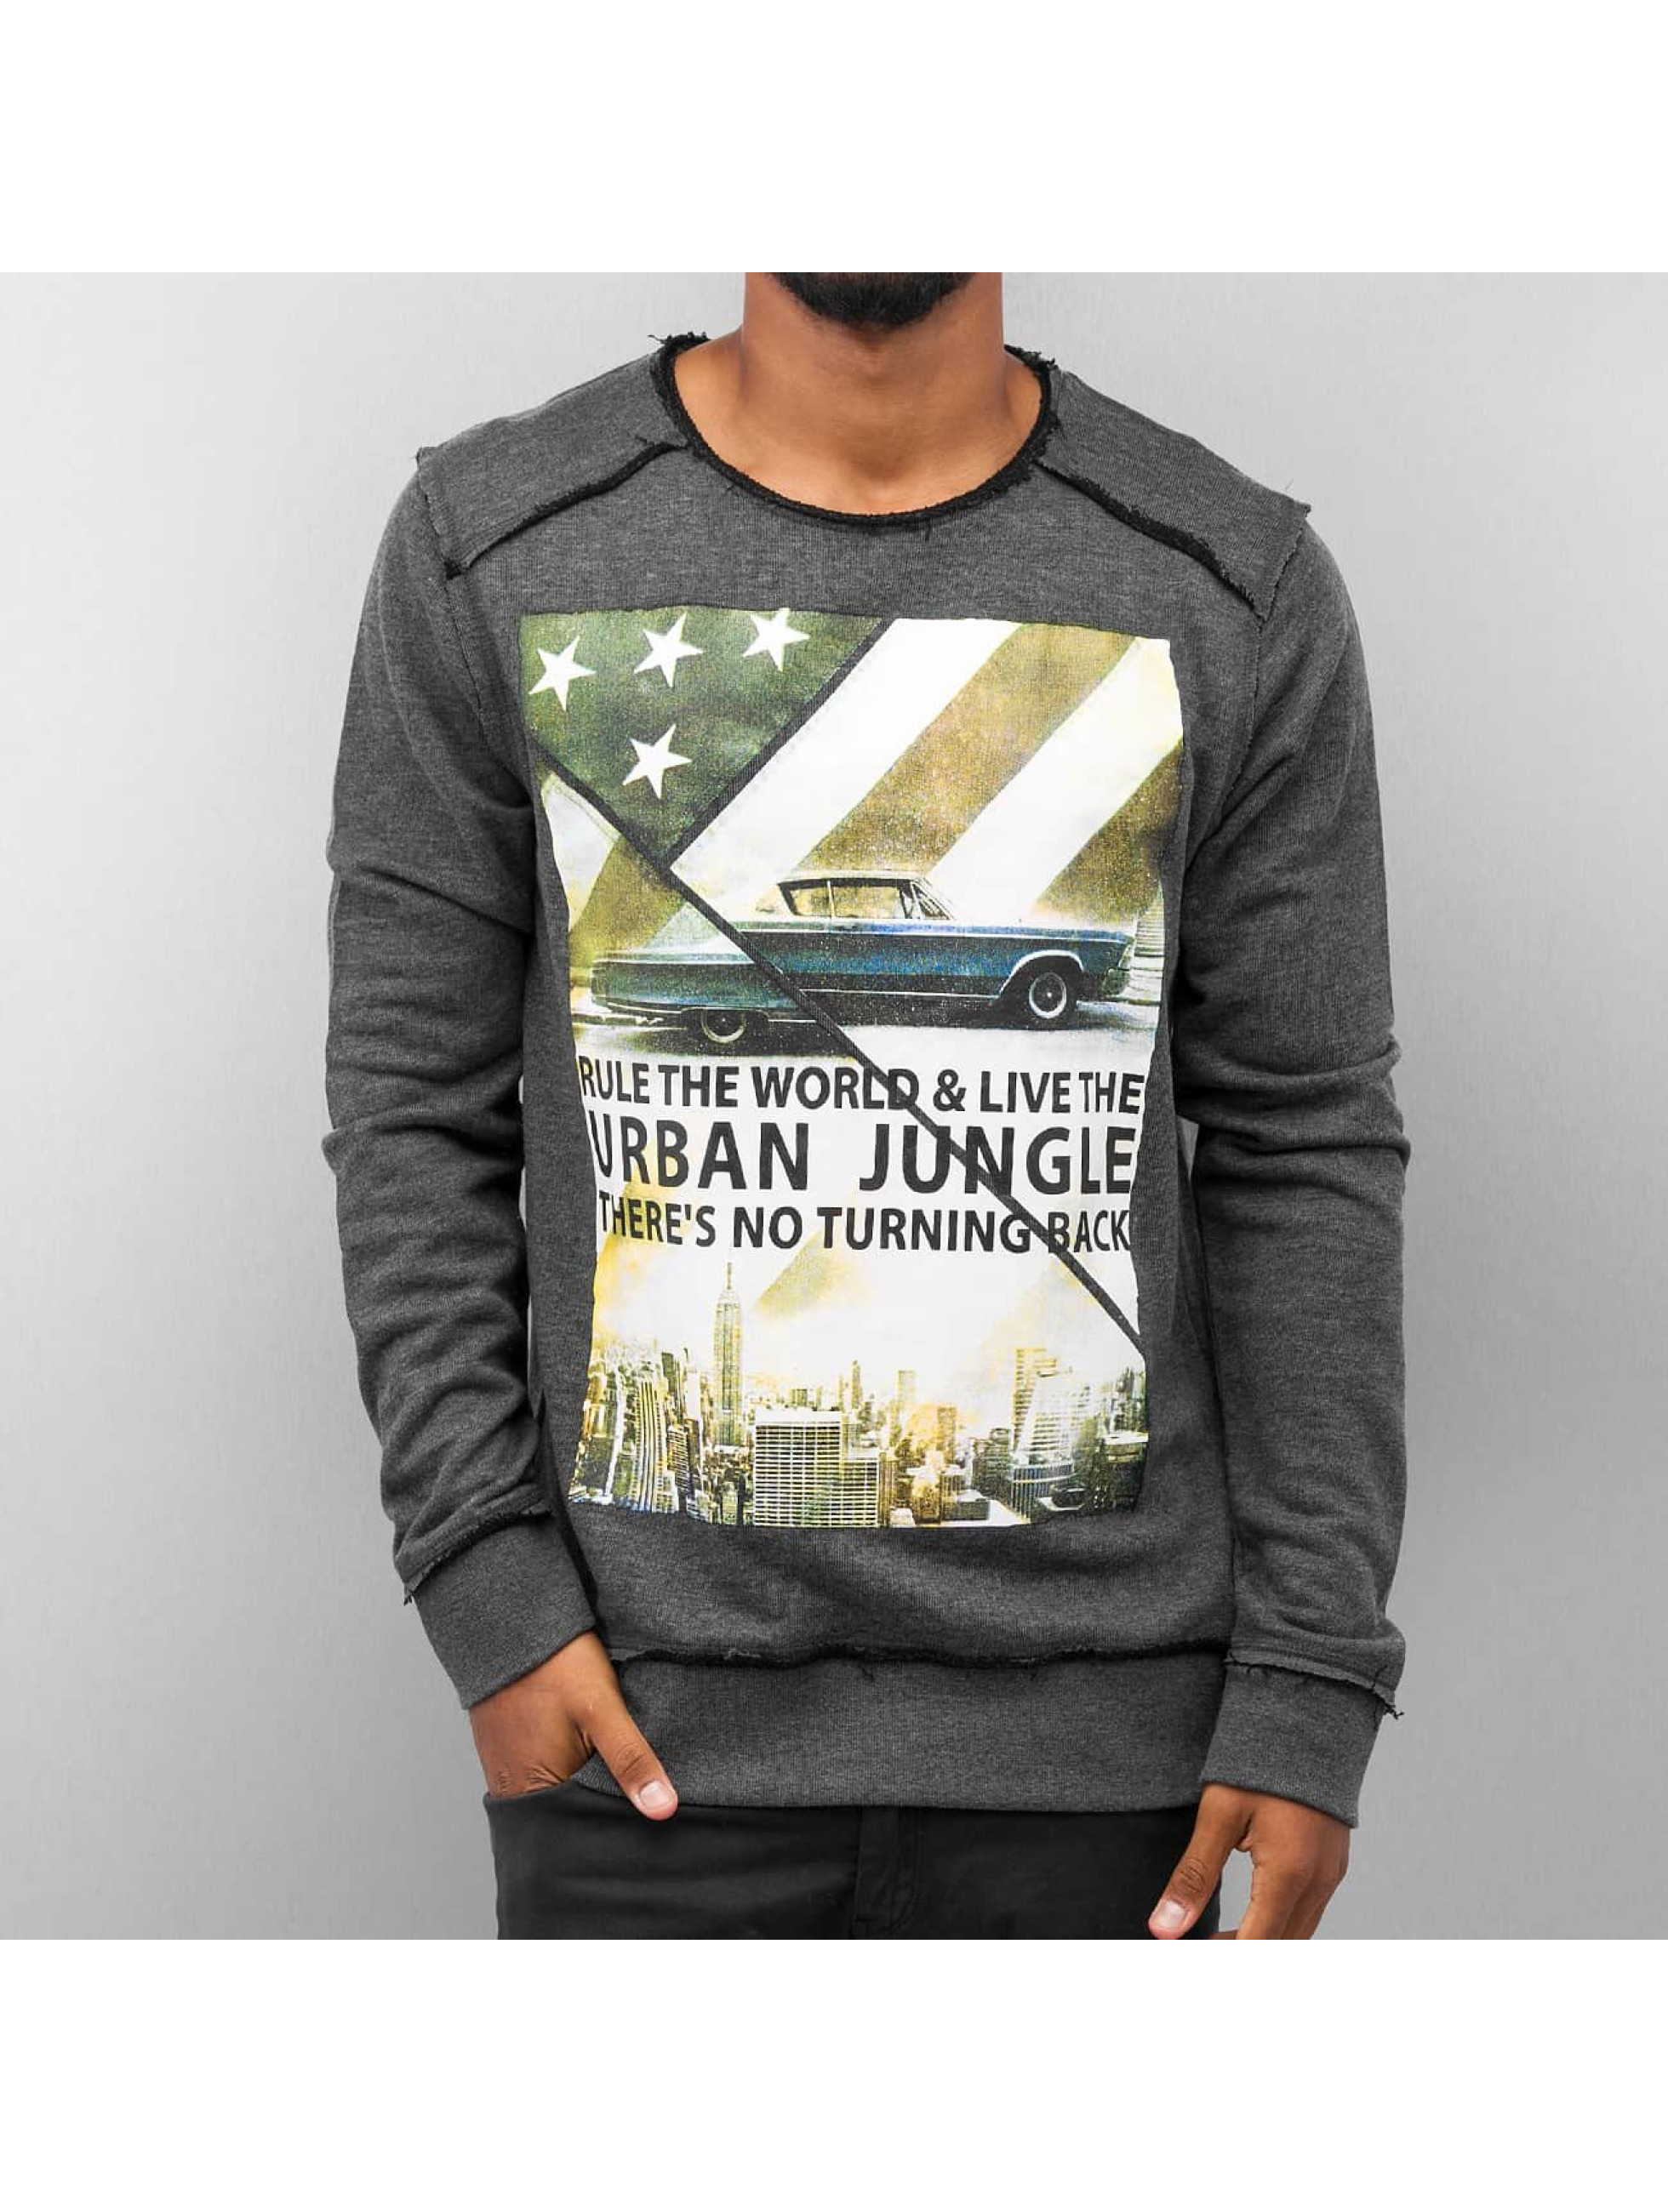 Urban Surface Пуловер Urban Jungle серый